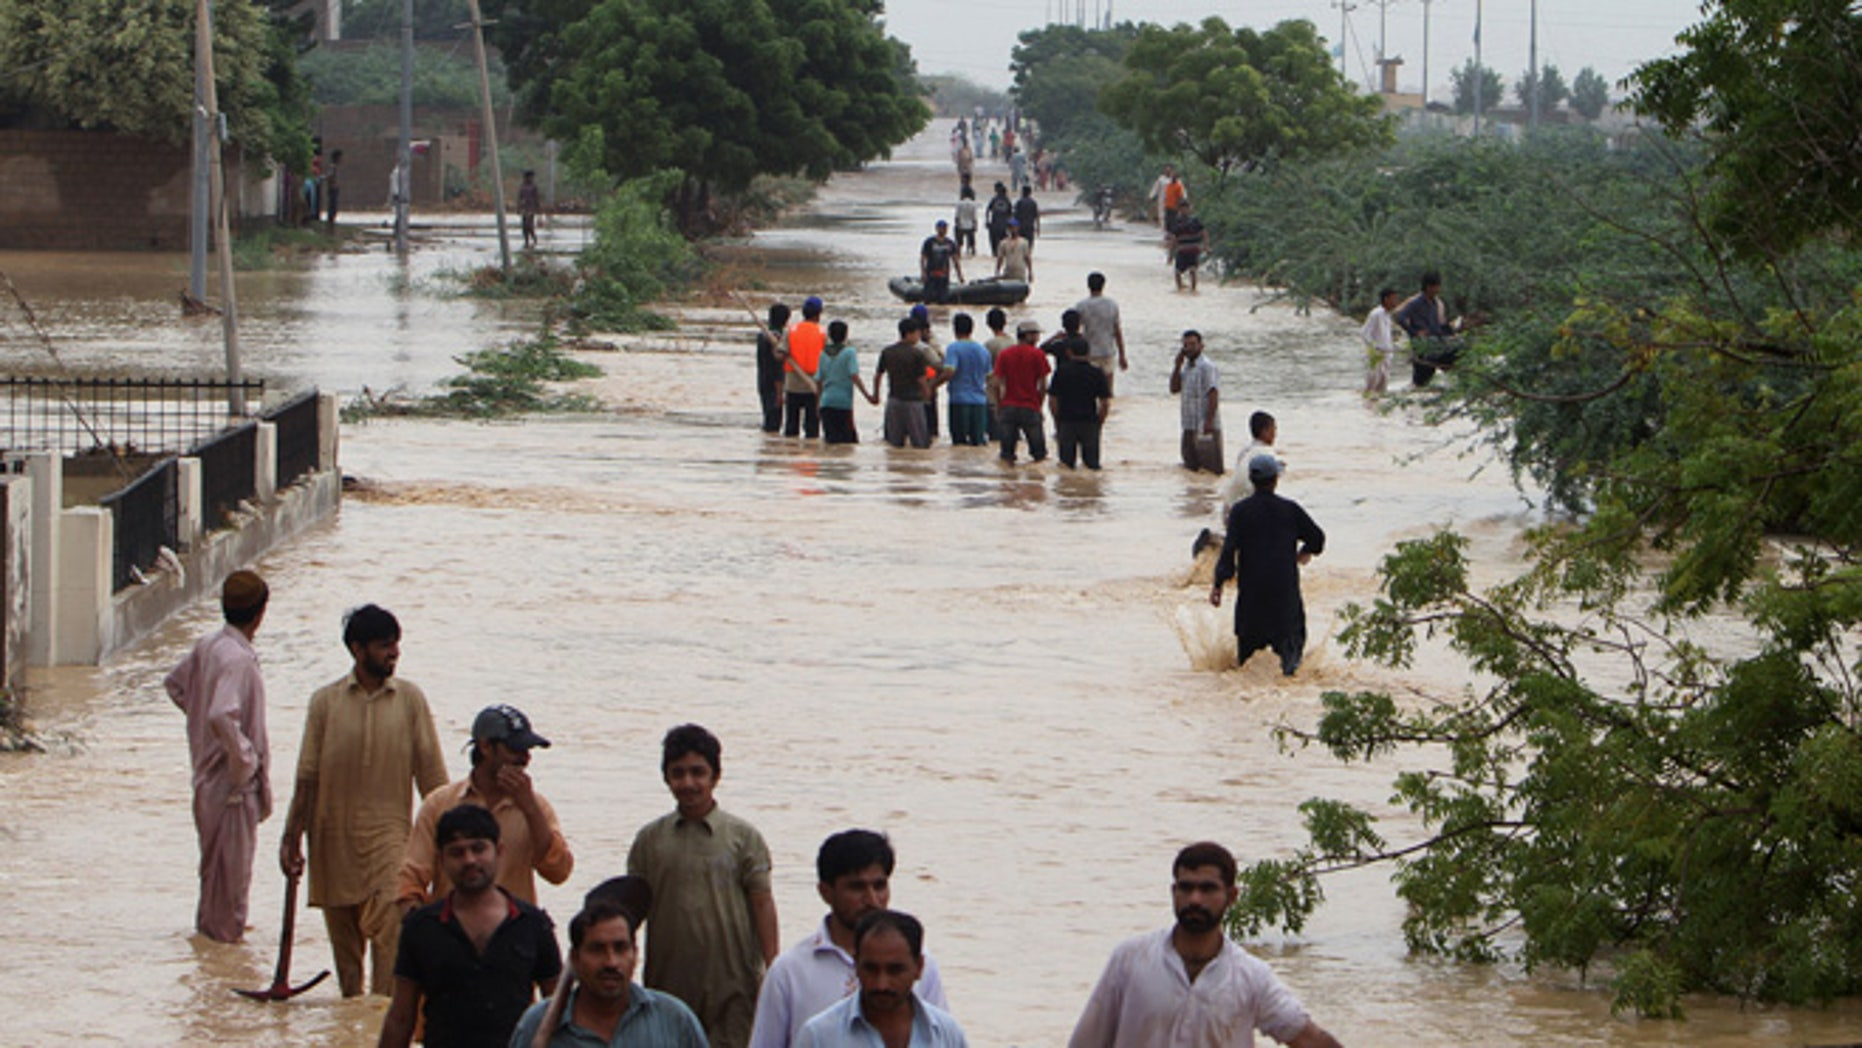 Aug. 4, 2013: People wade through flooded road caused by heavy rains on the outskirts of Karachi, Pakistan.